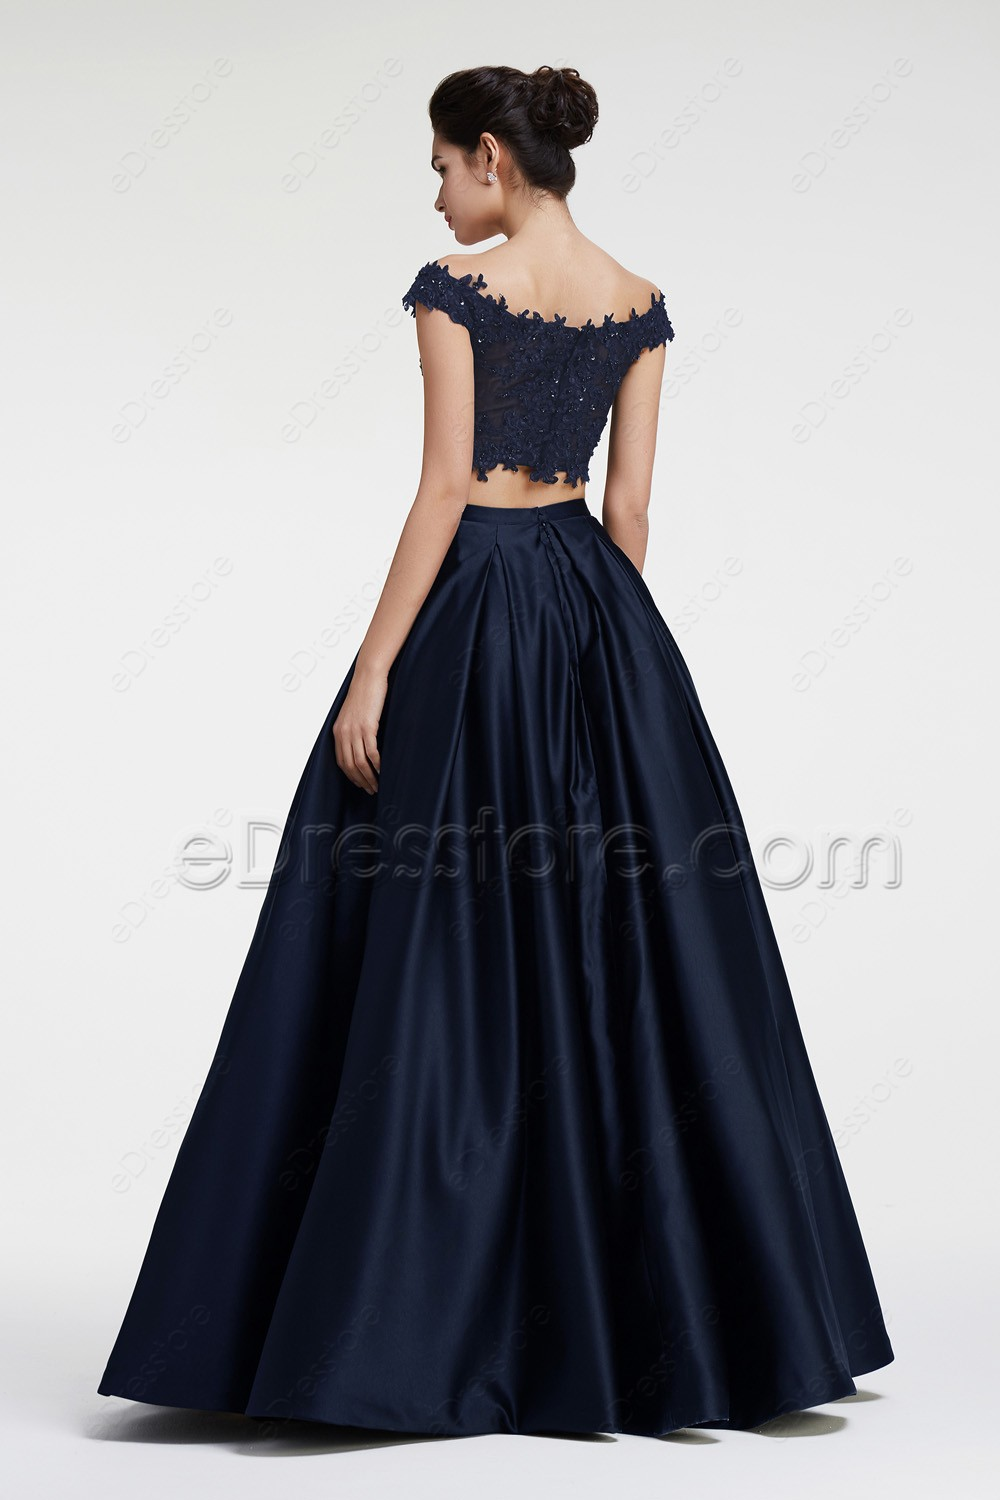 Navy Blue Off The Shoulder Ball Gown 2 Piece Prom Dress